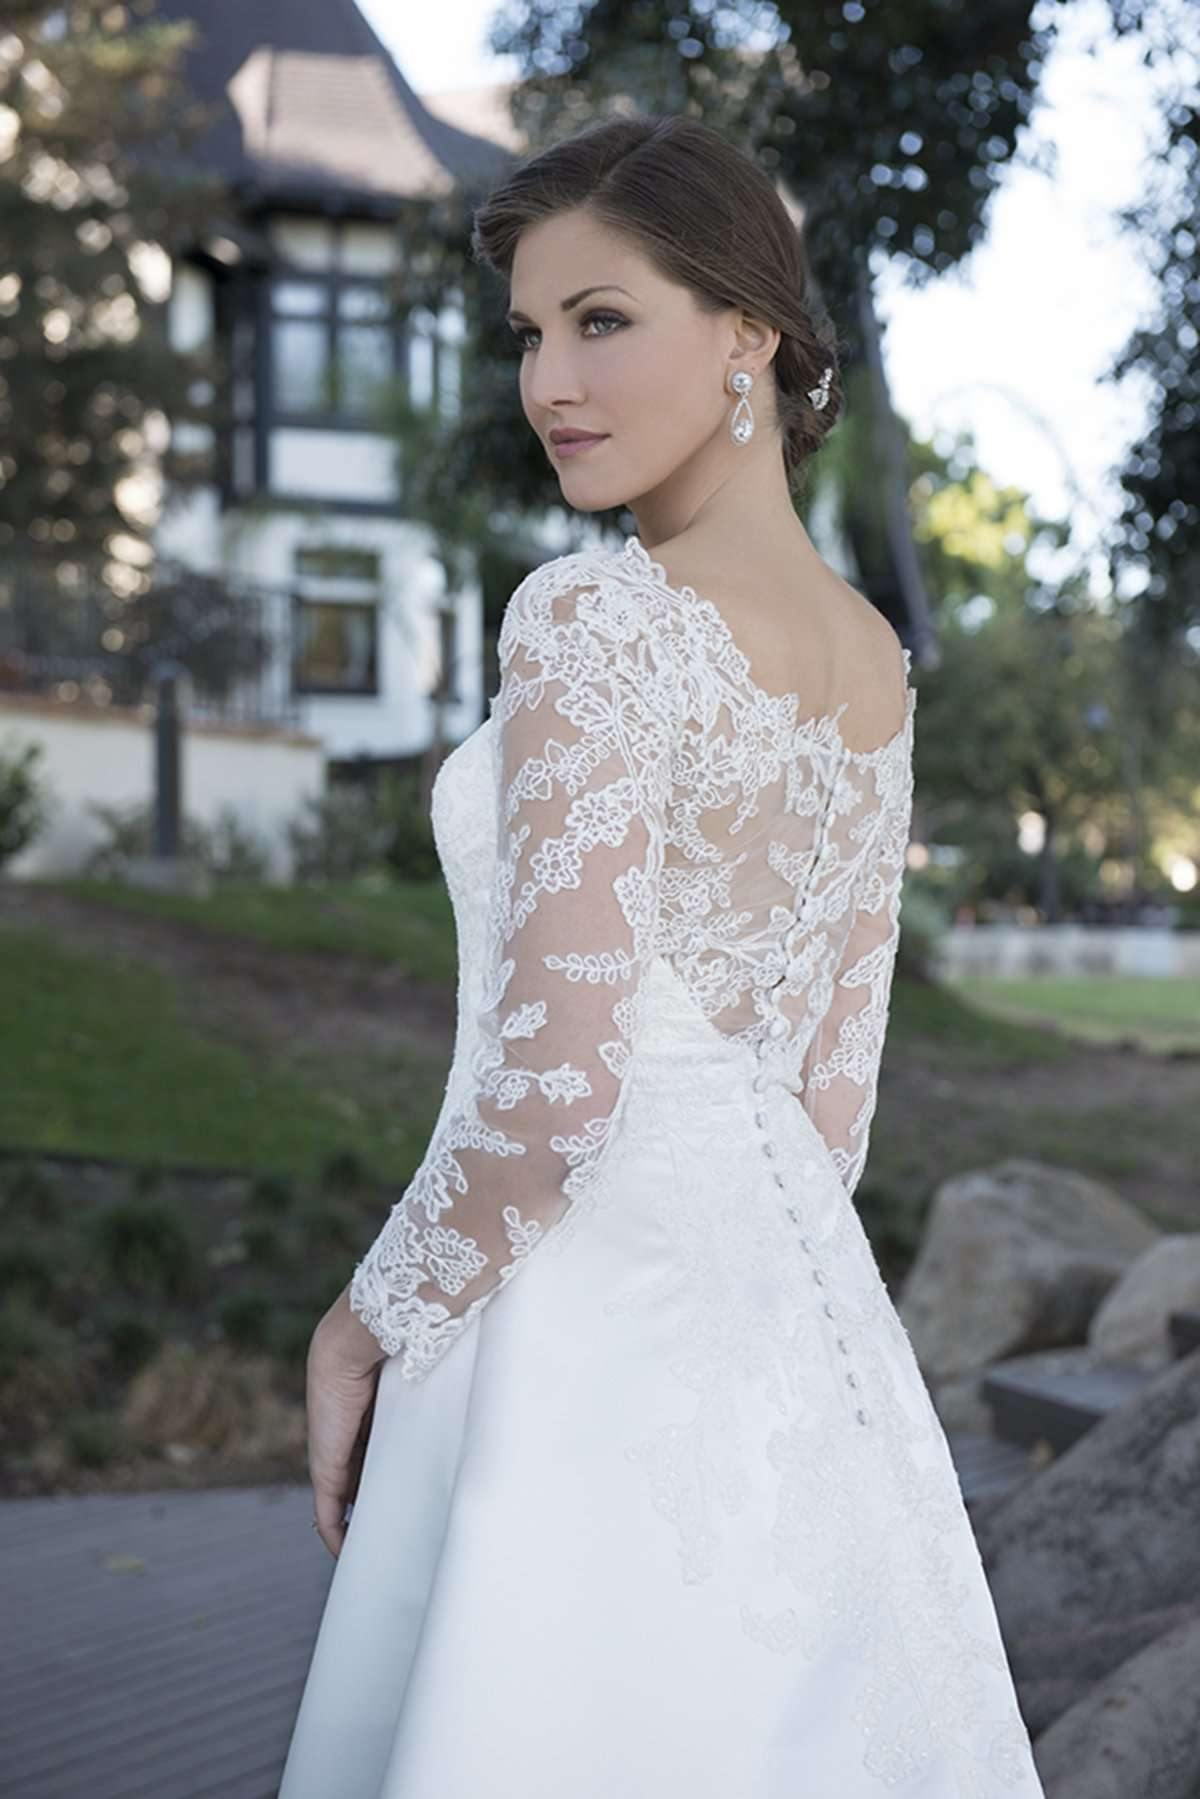 Katelin plus - Adore Bridal and Occasion Wear